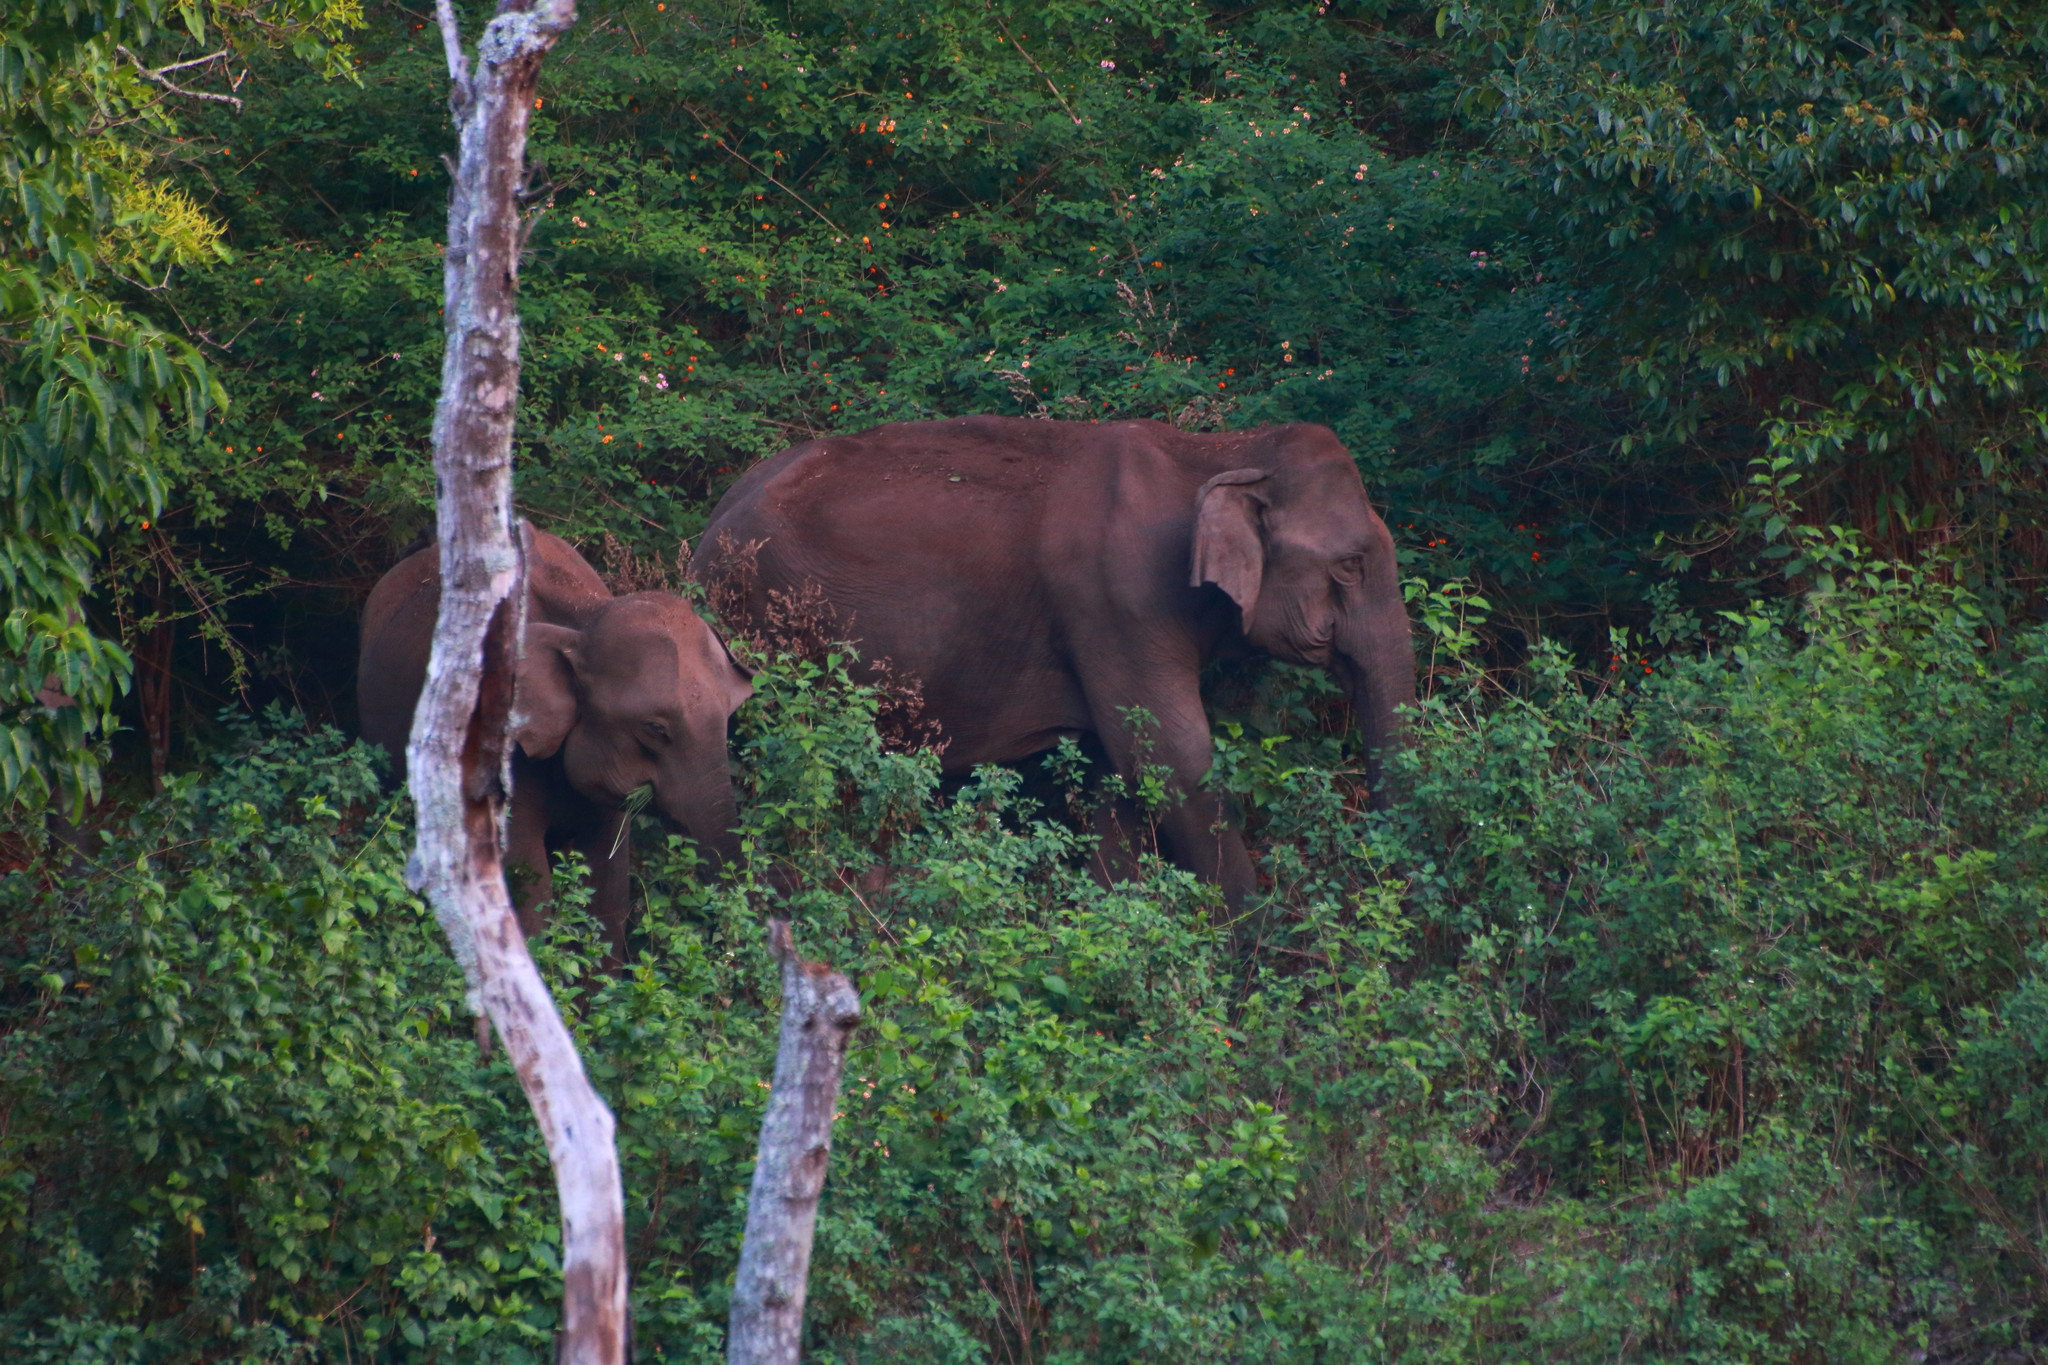 Elephants coming out of the woods